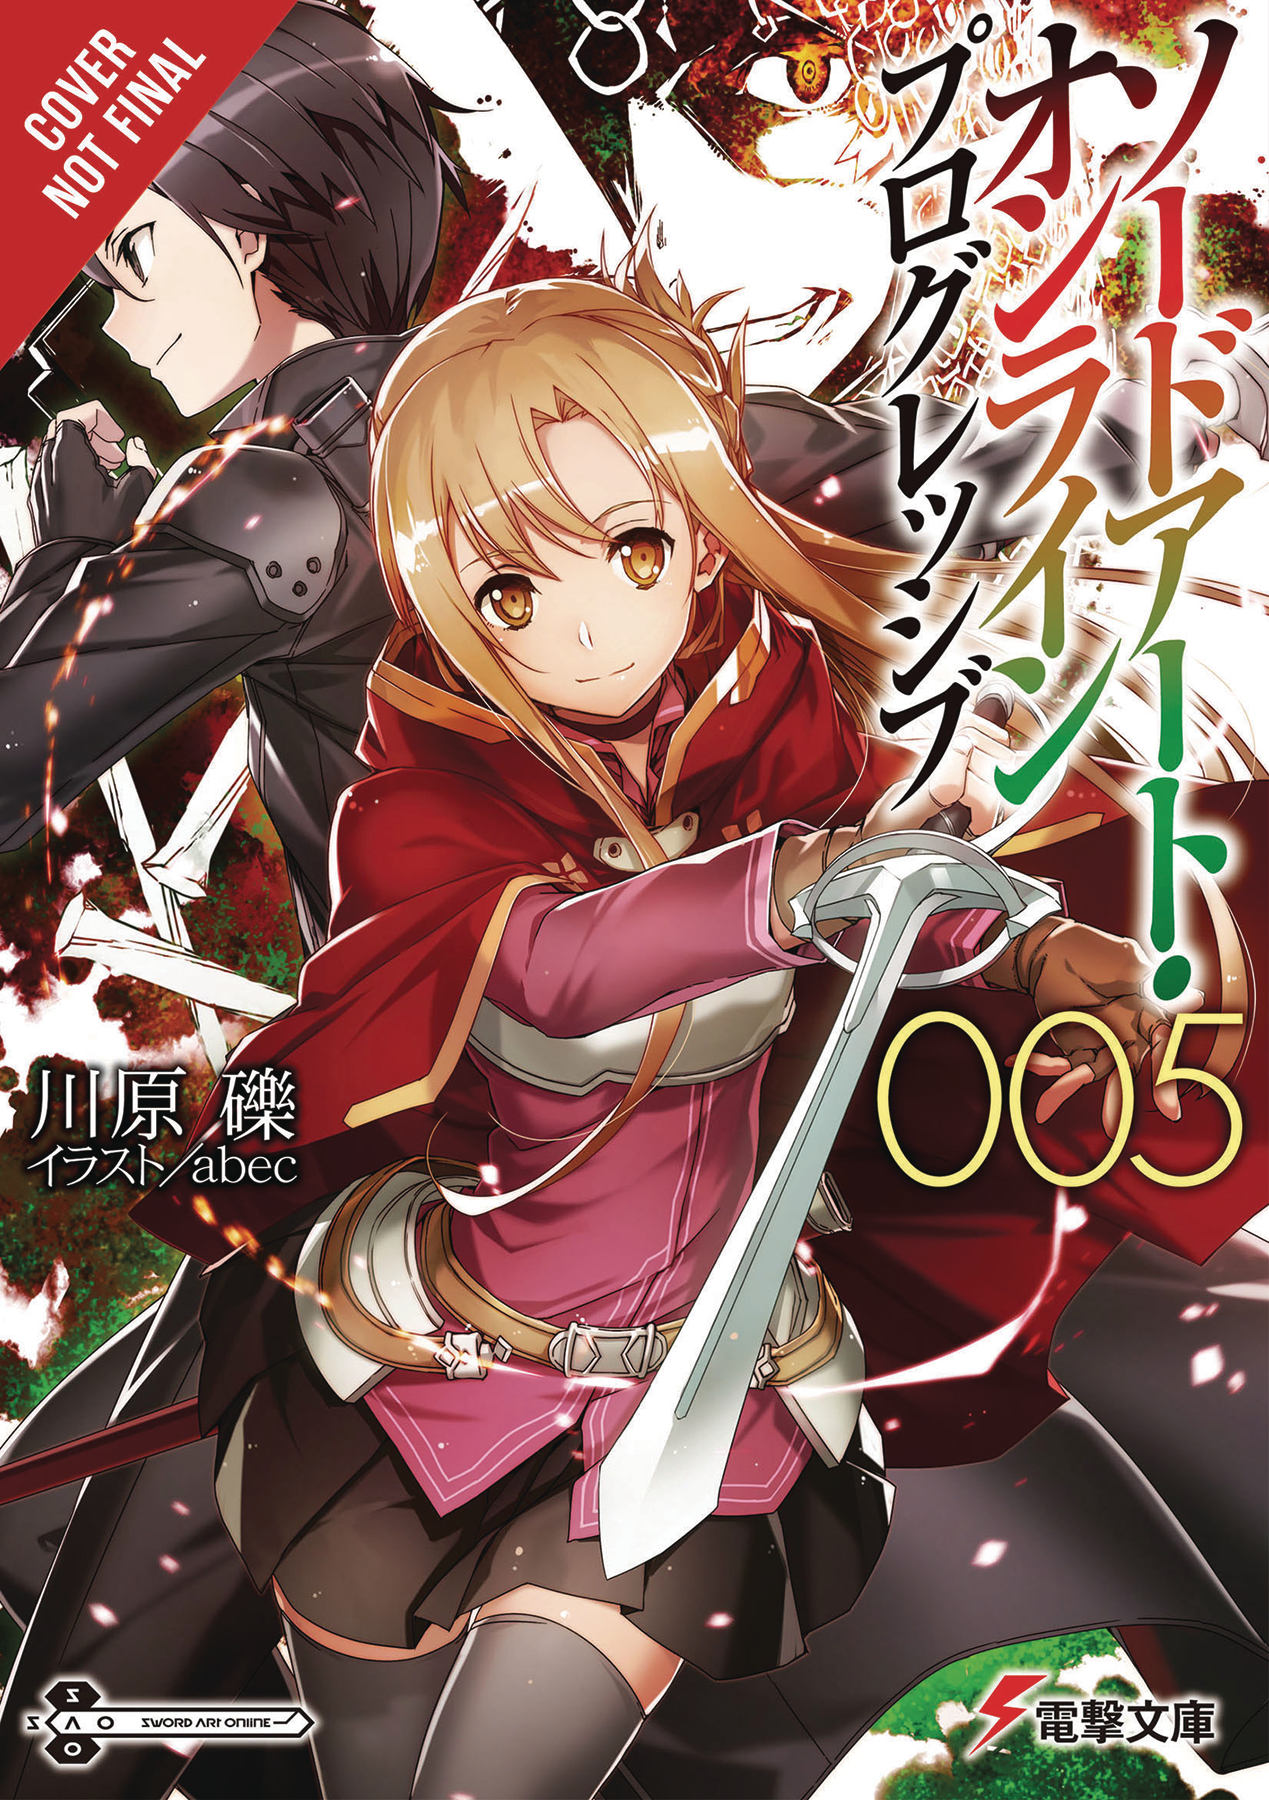 SWORD ART ONLINE NOVEL PROGRESSIVE VOL 05